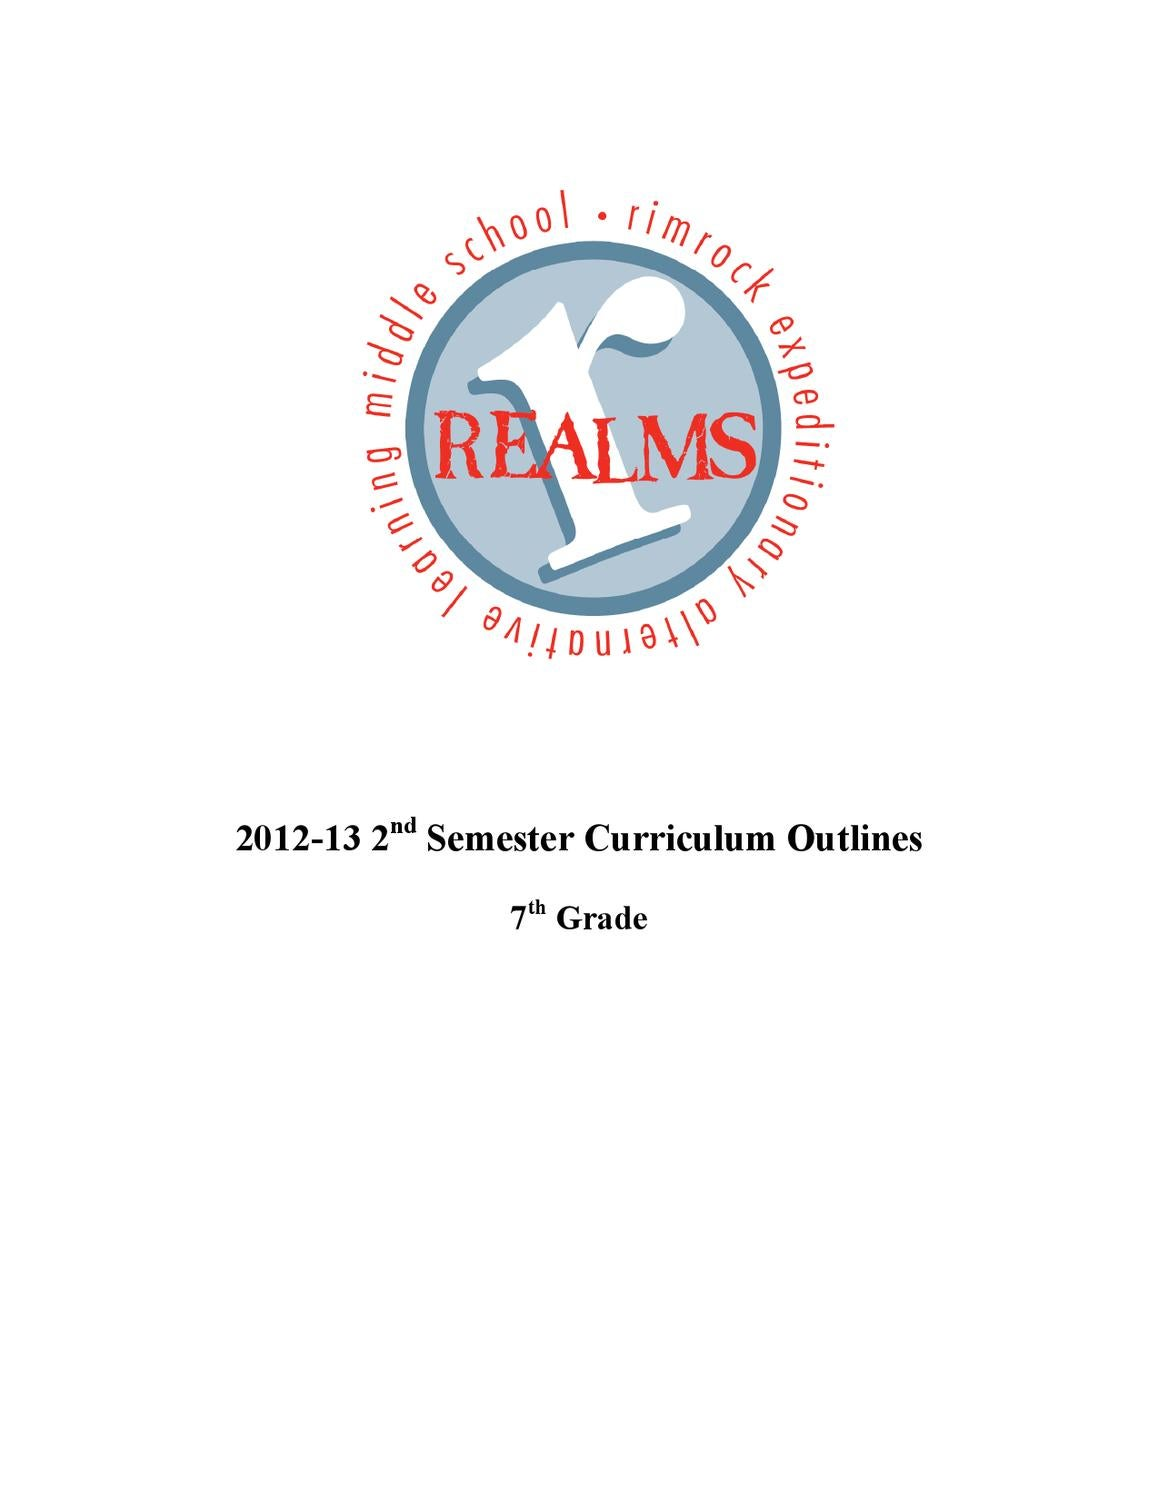 7th Grade 2nd Semester Curriculum by Roger White - issuu